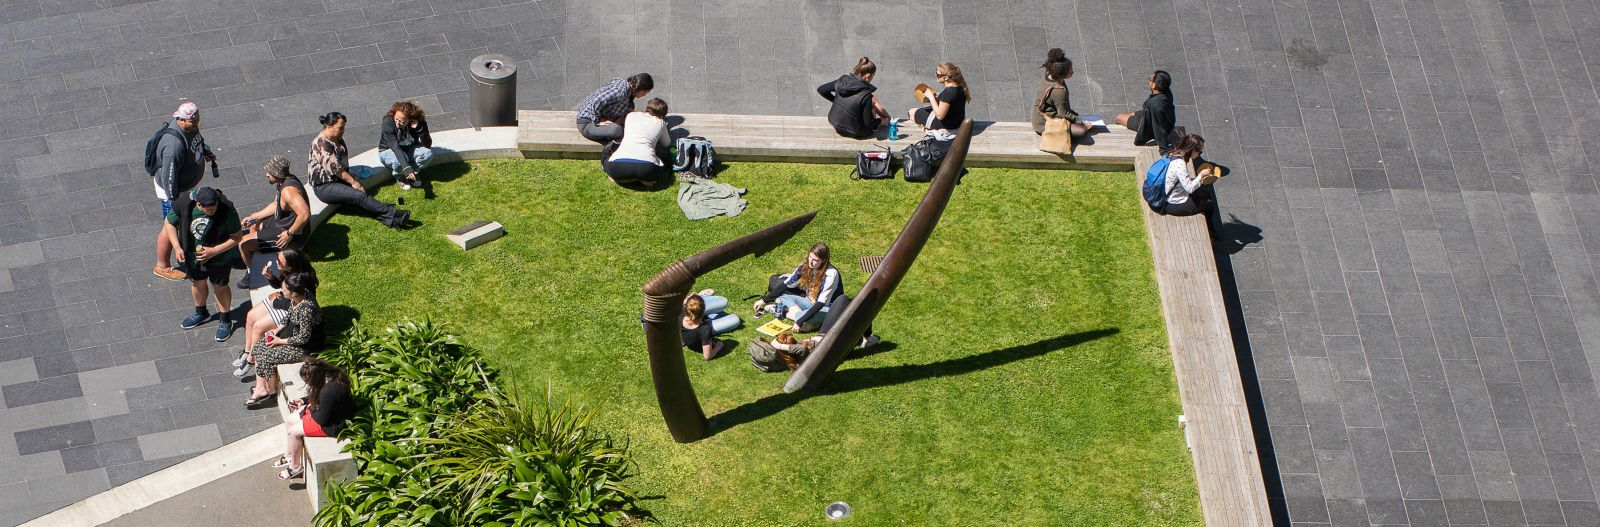 Students in Tim Beaglehole courtyard at Victoria University